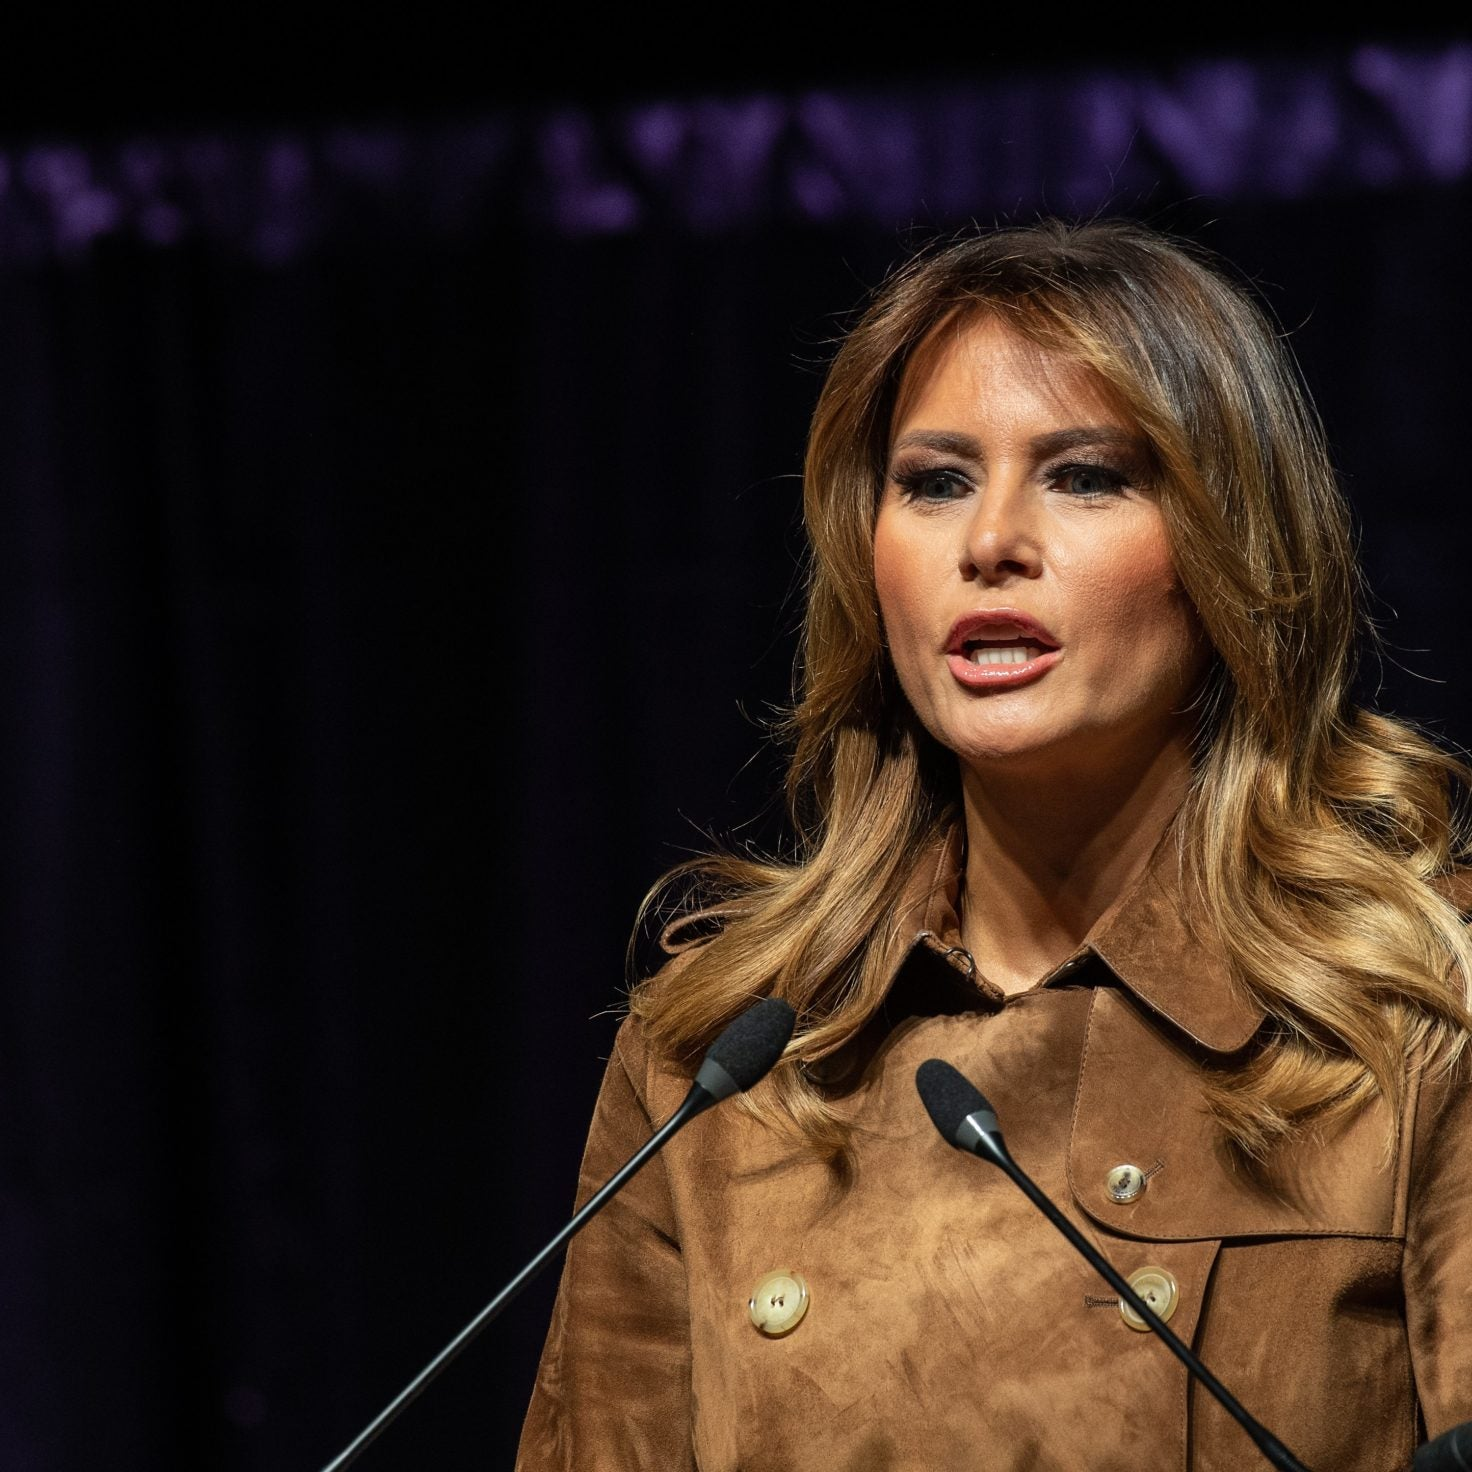 Melania Trump Gets Booed In Baltimore